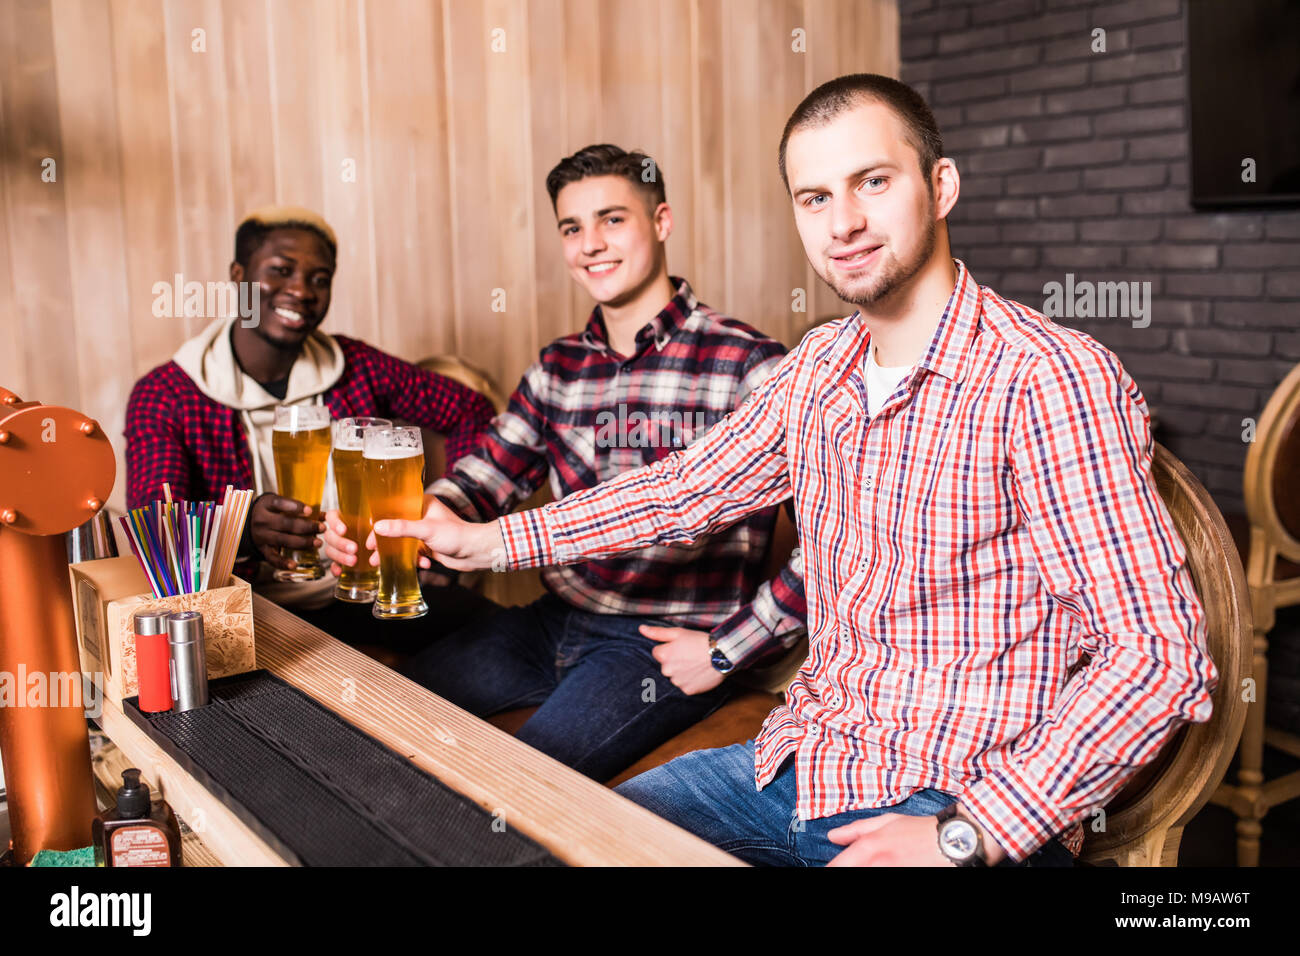 Cheerful old friends having fun and drinking draft beer at bar counter in pub. - Stock Image